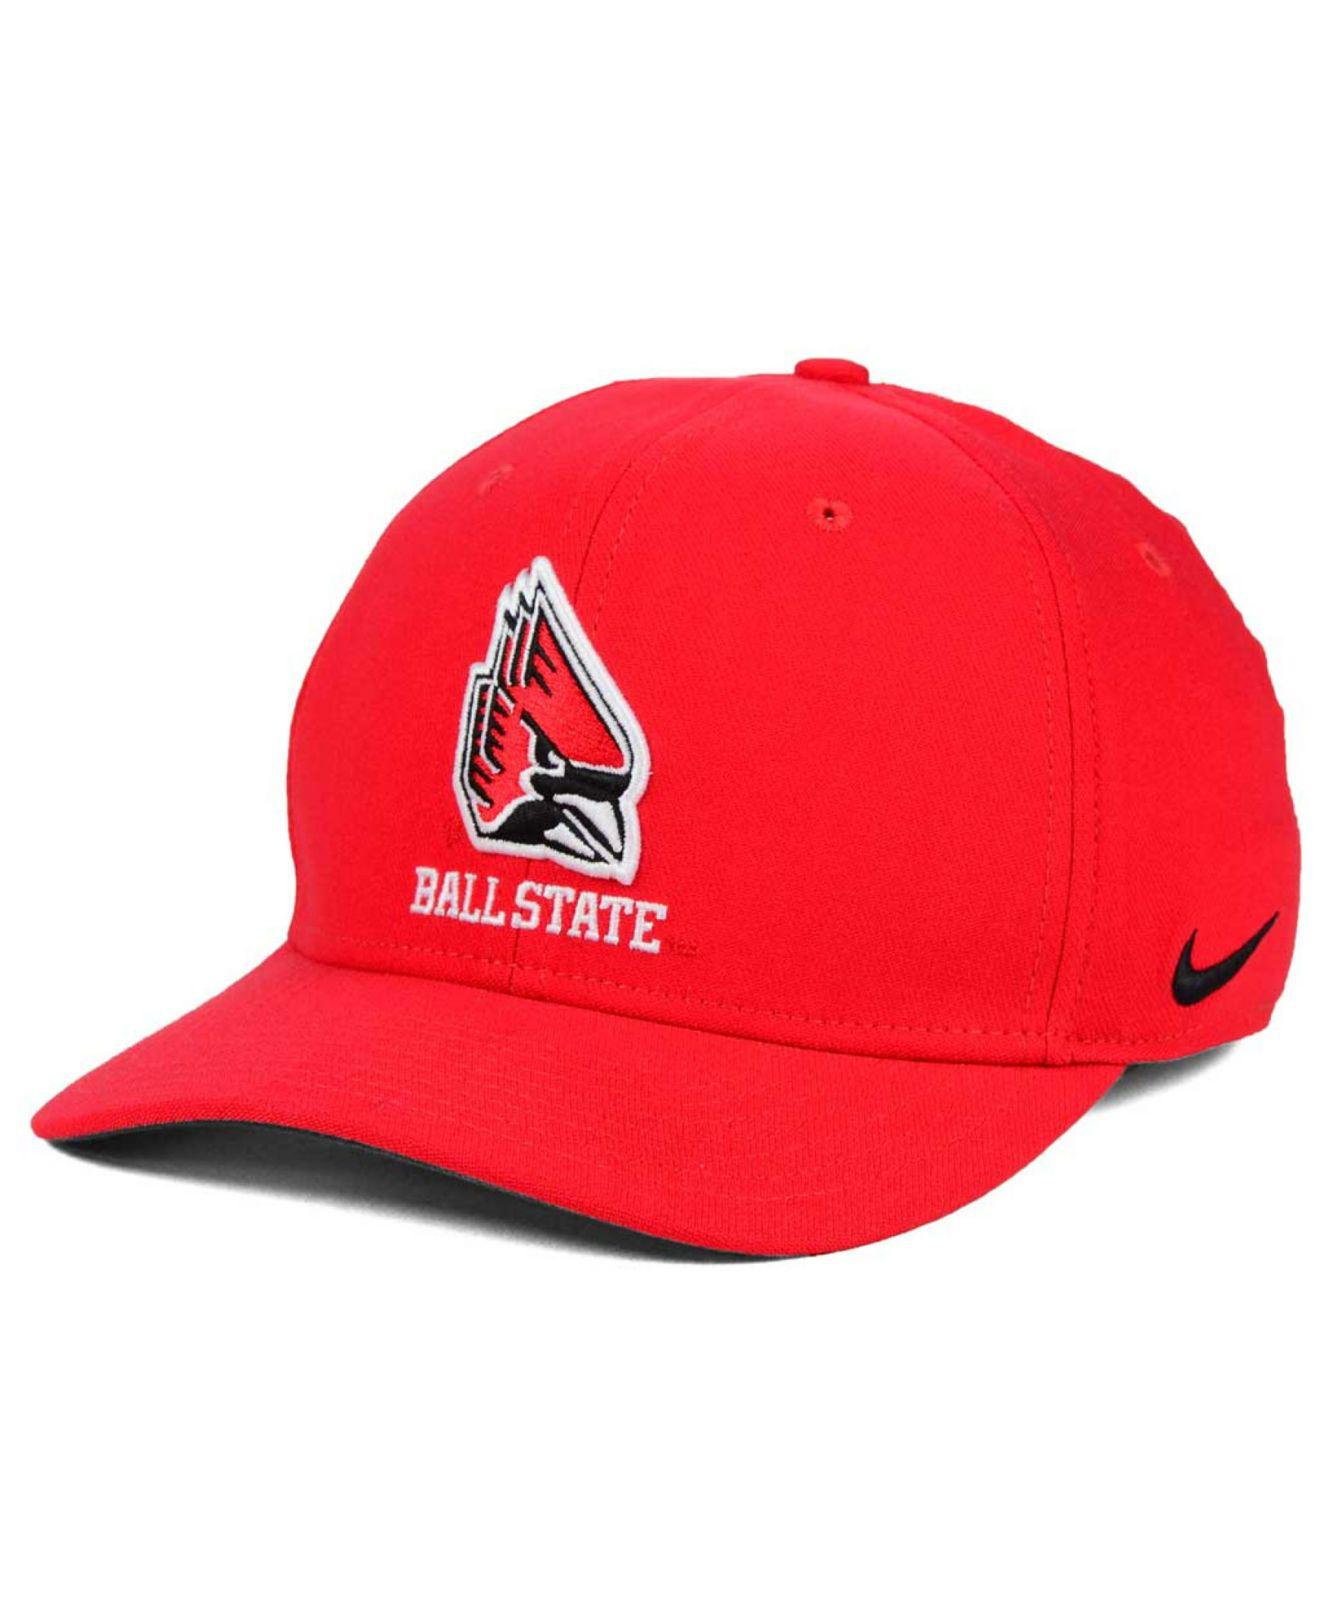 8e8b78018f9 Lyst - Nike Ball State Cardinals Classic Swoosh Cap in Red for Men